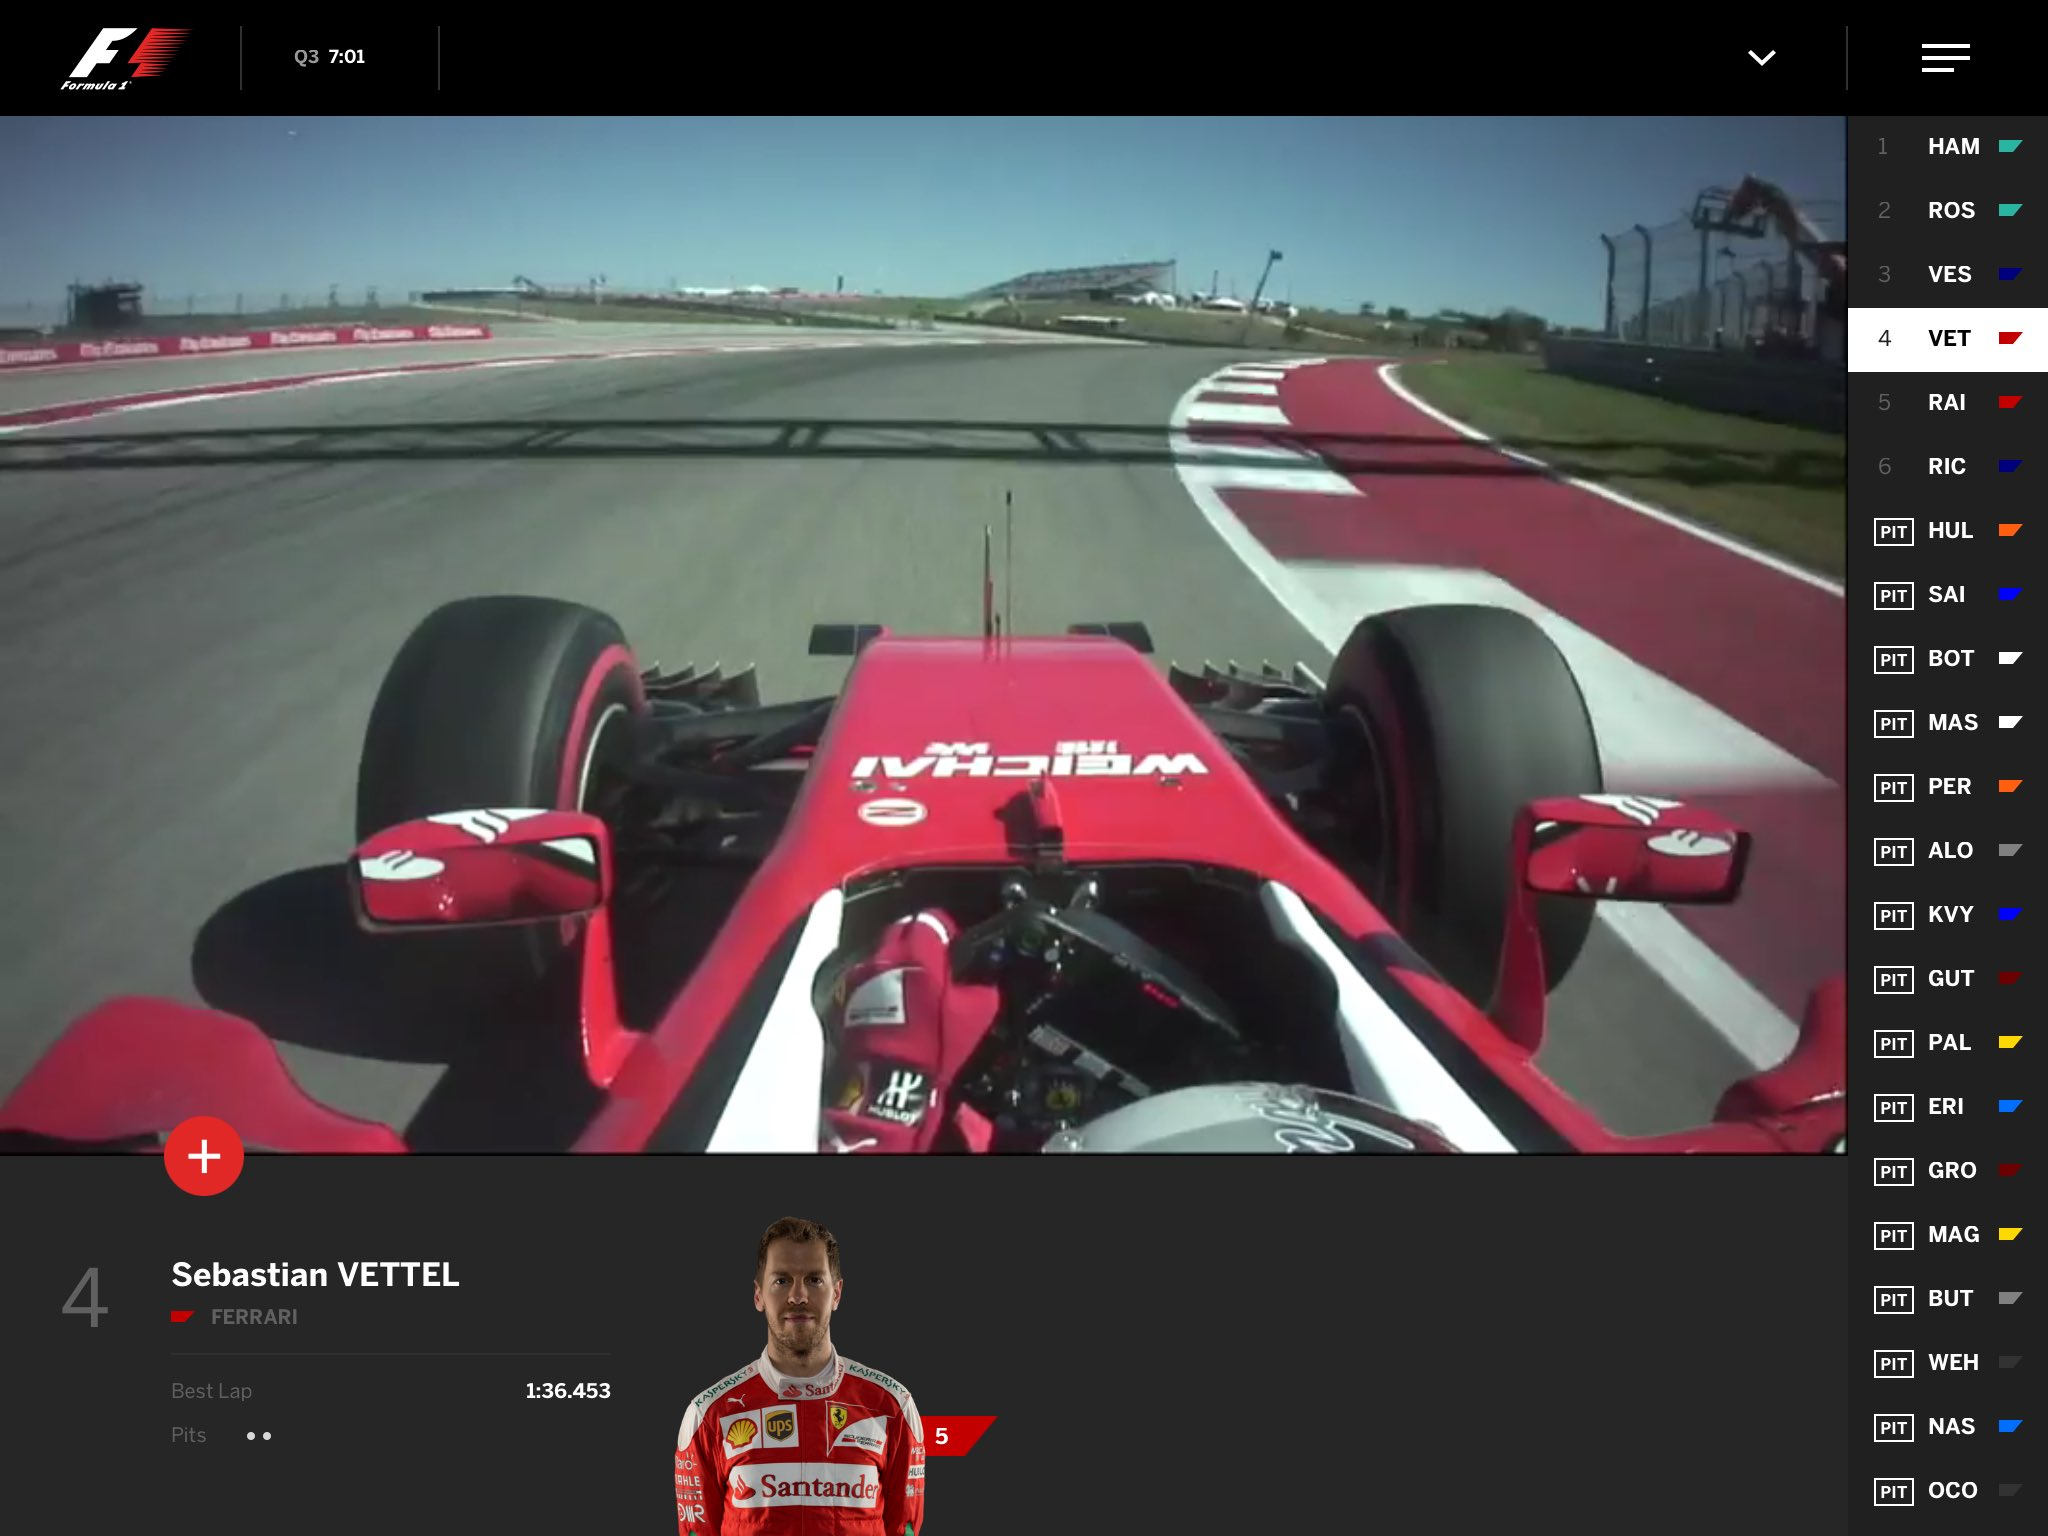 Throwback to 2016, when FOM tested an early F1 TV app